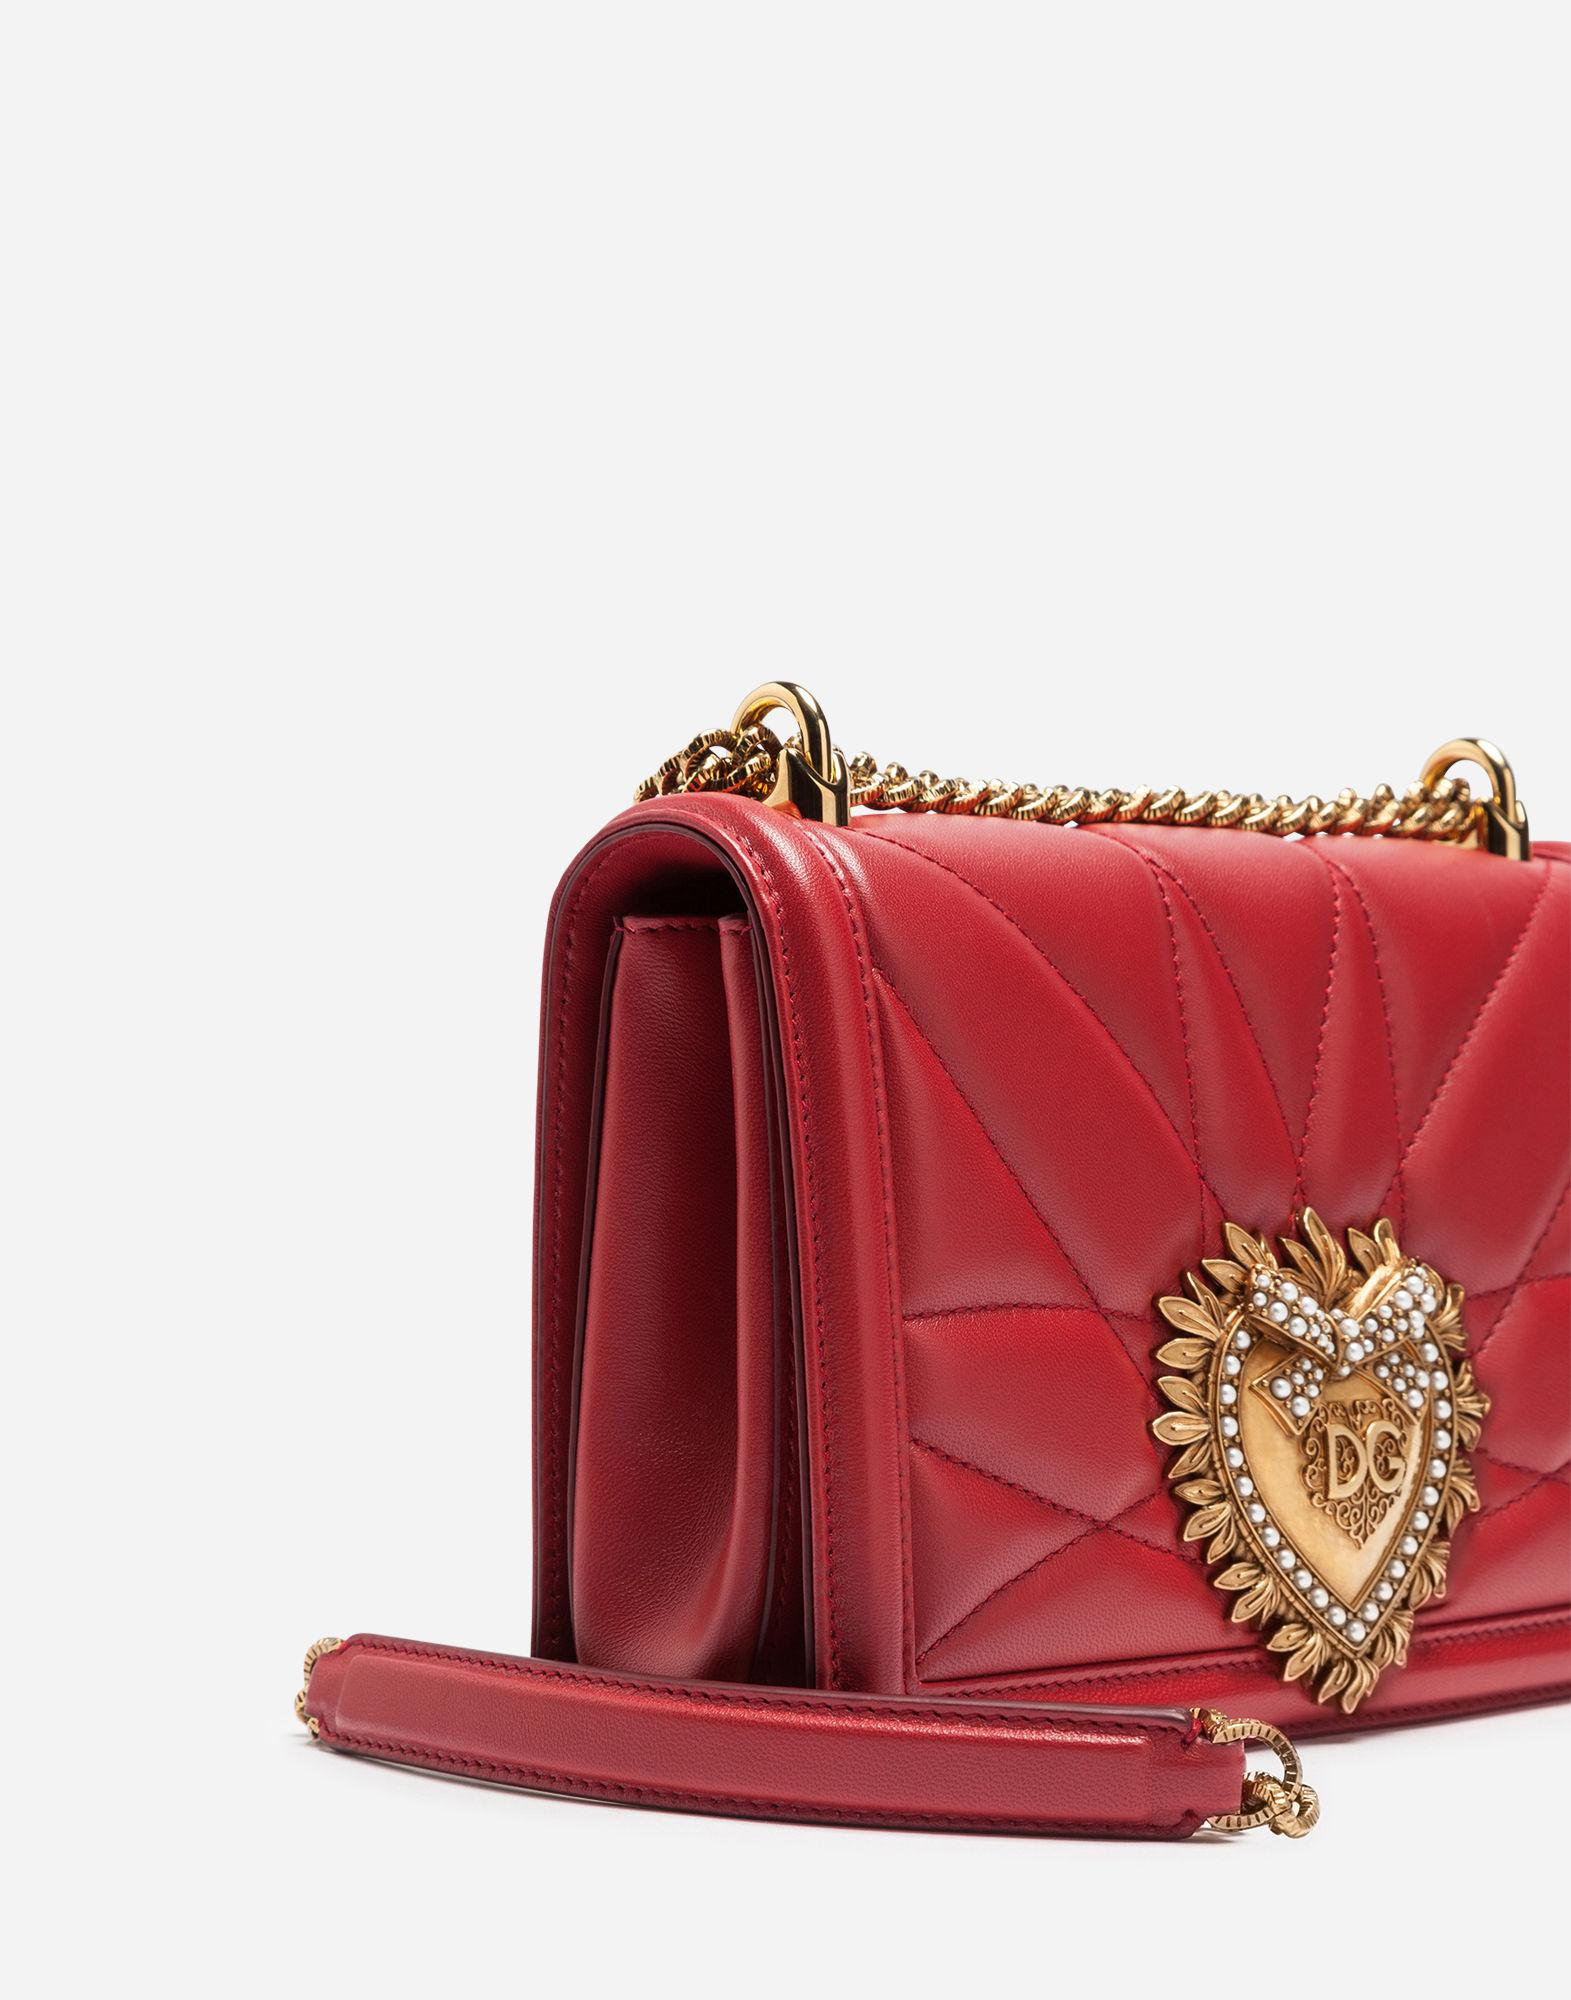 eae53a2560 Lyst - Dolce   Gabbana Medium Devotion Bag In Quilted Nappa Leather in Red  - Save 20%